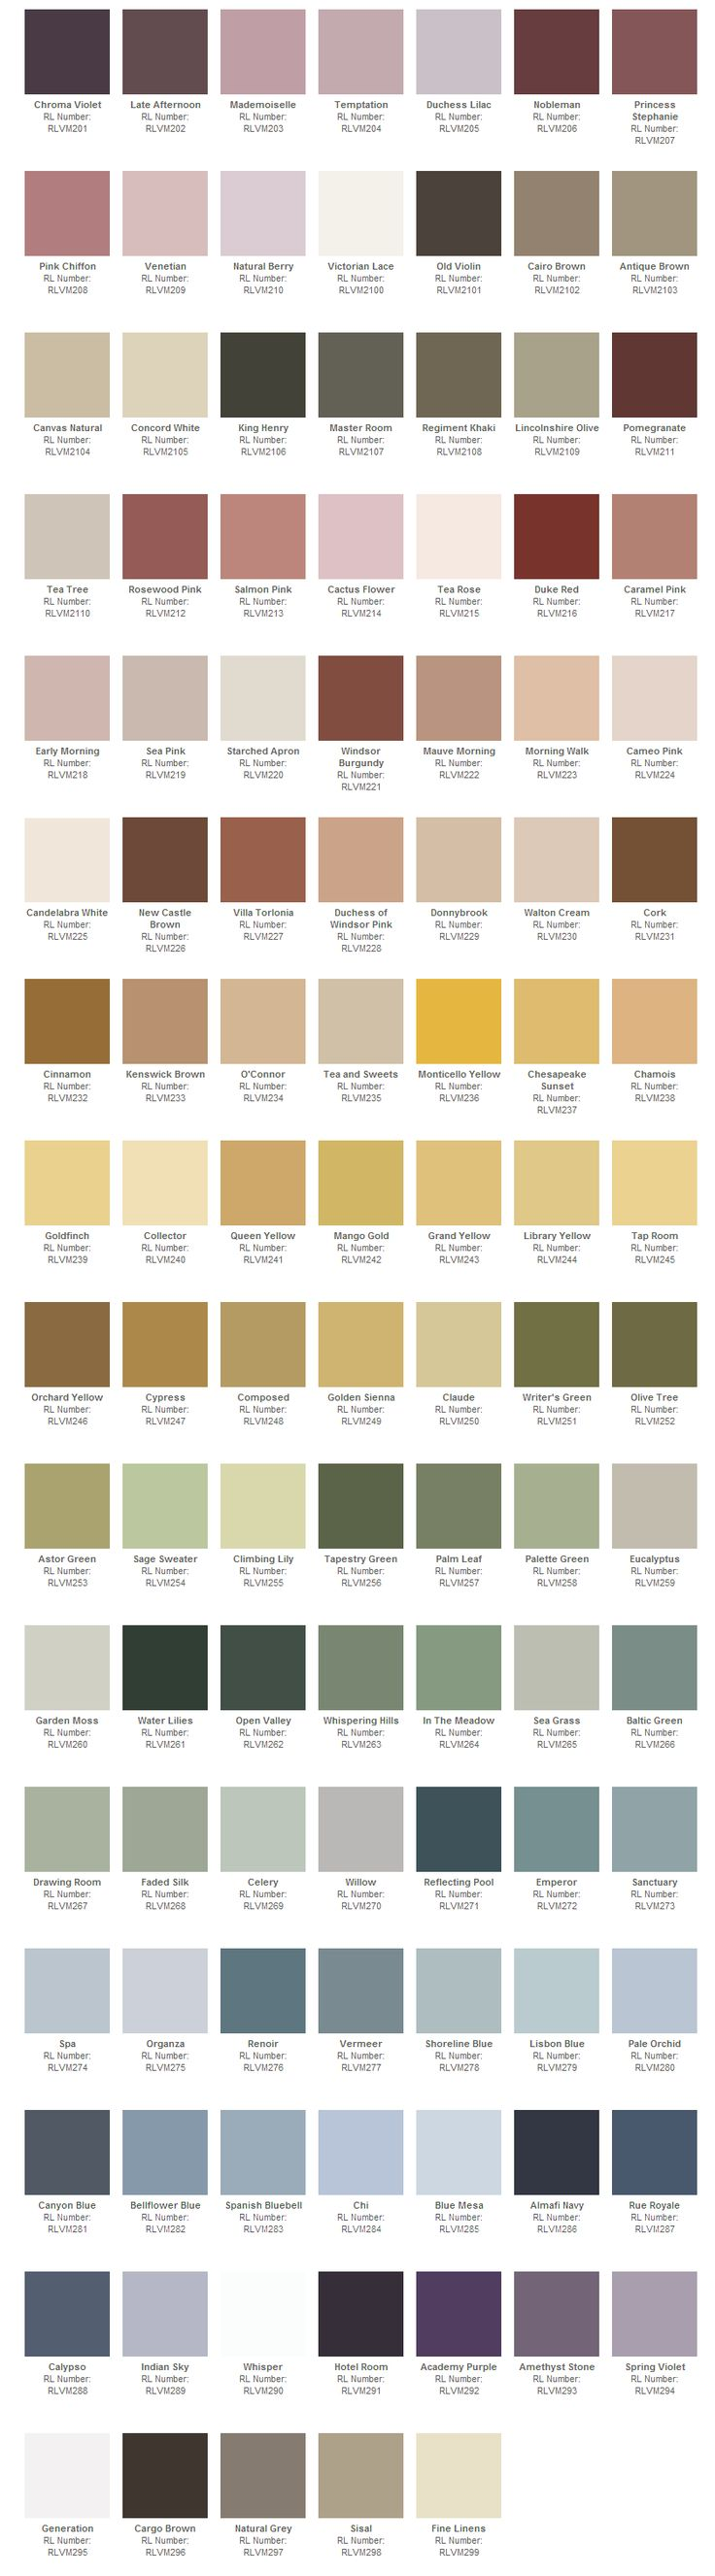 ralph lauren paint colors chart behr paints behr colors. Black Bedroom Furniture Sets. Home Design Ideas